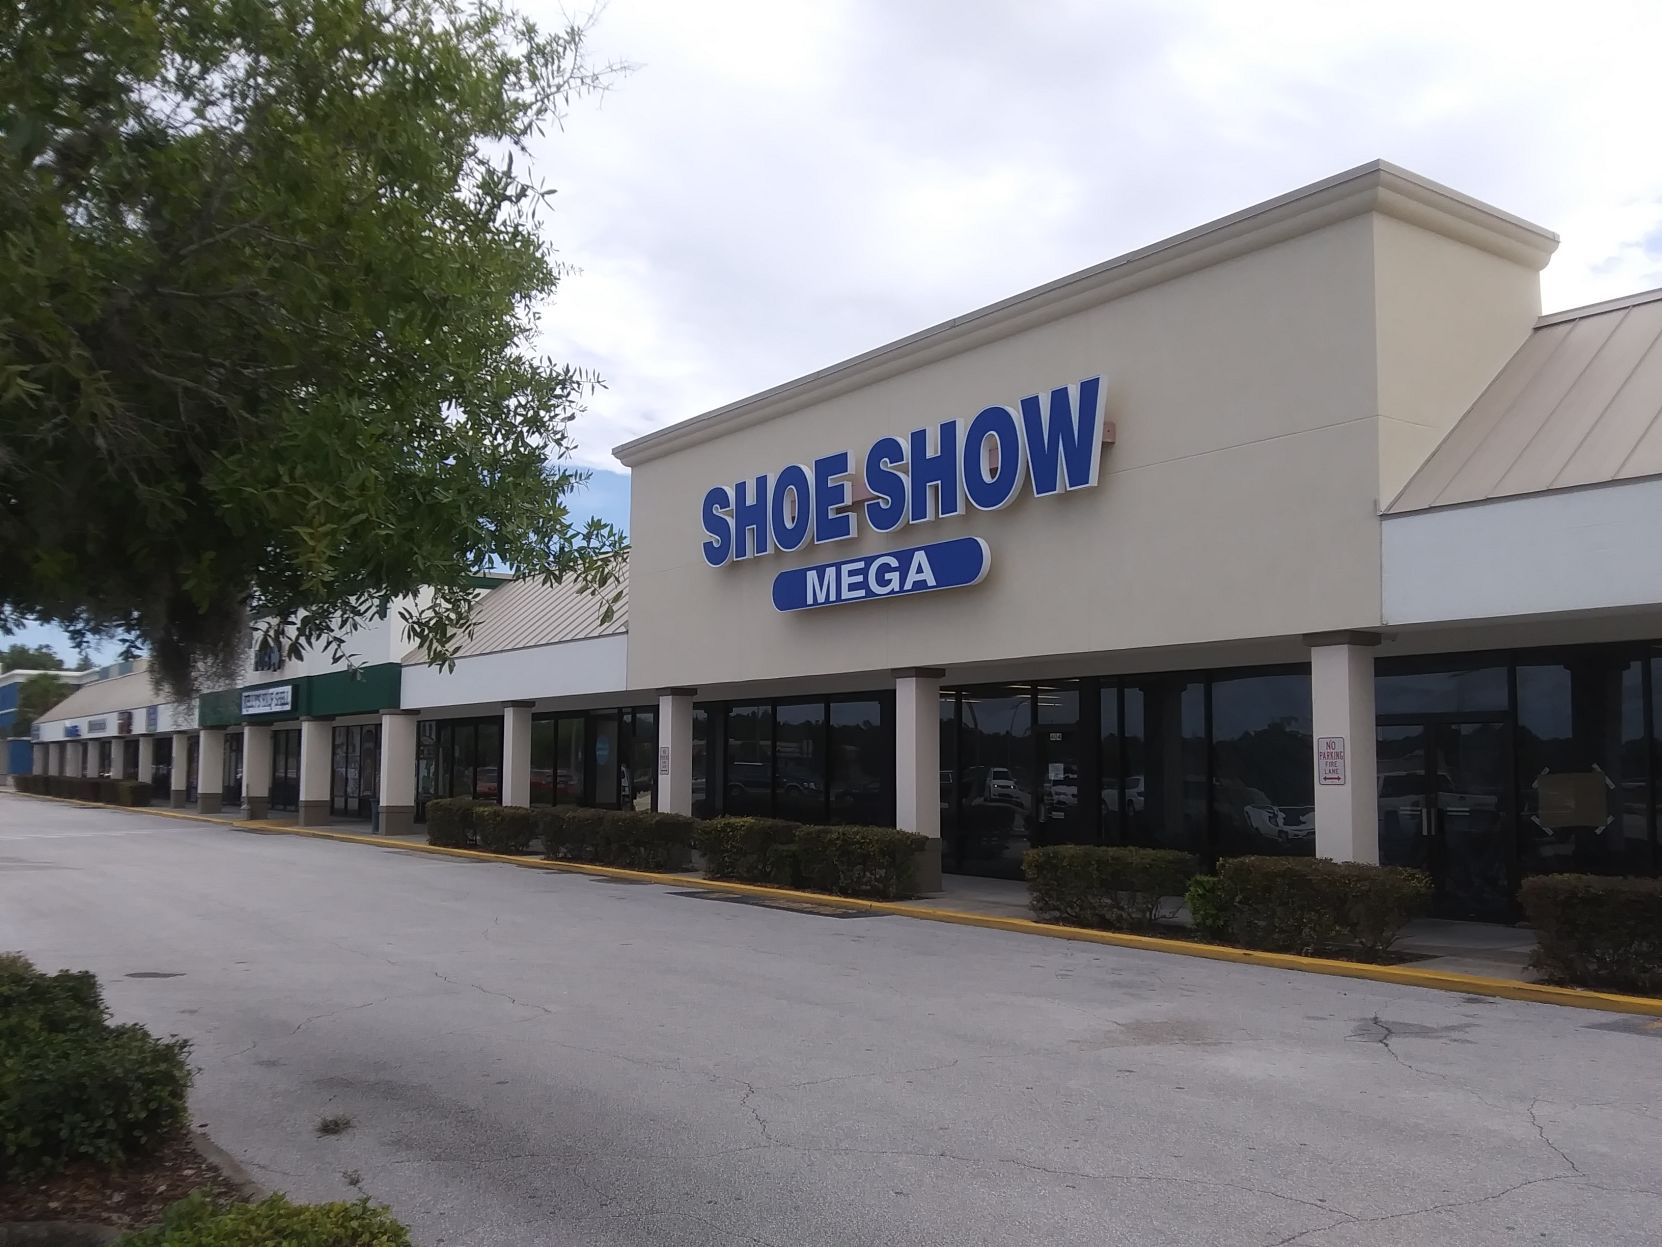 National shoe store chain to open soon